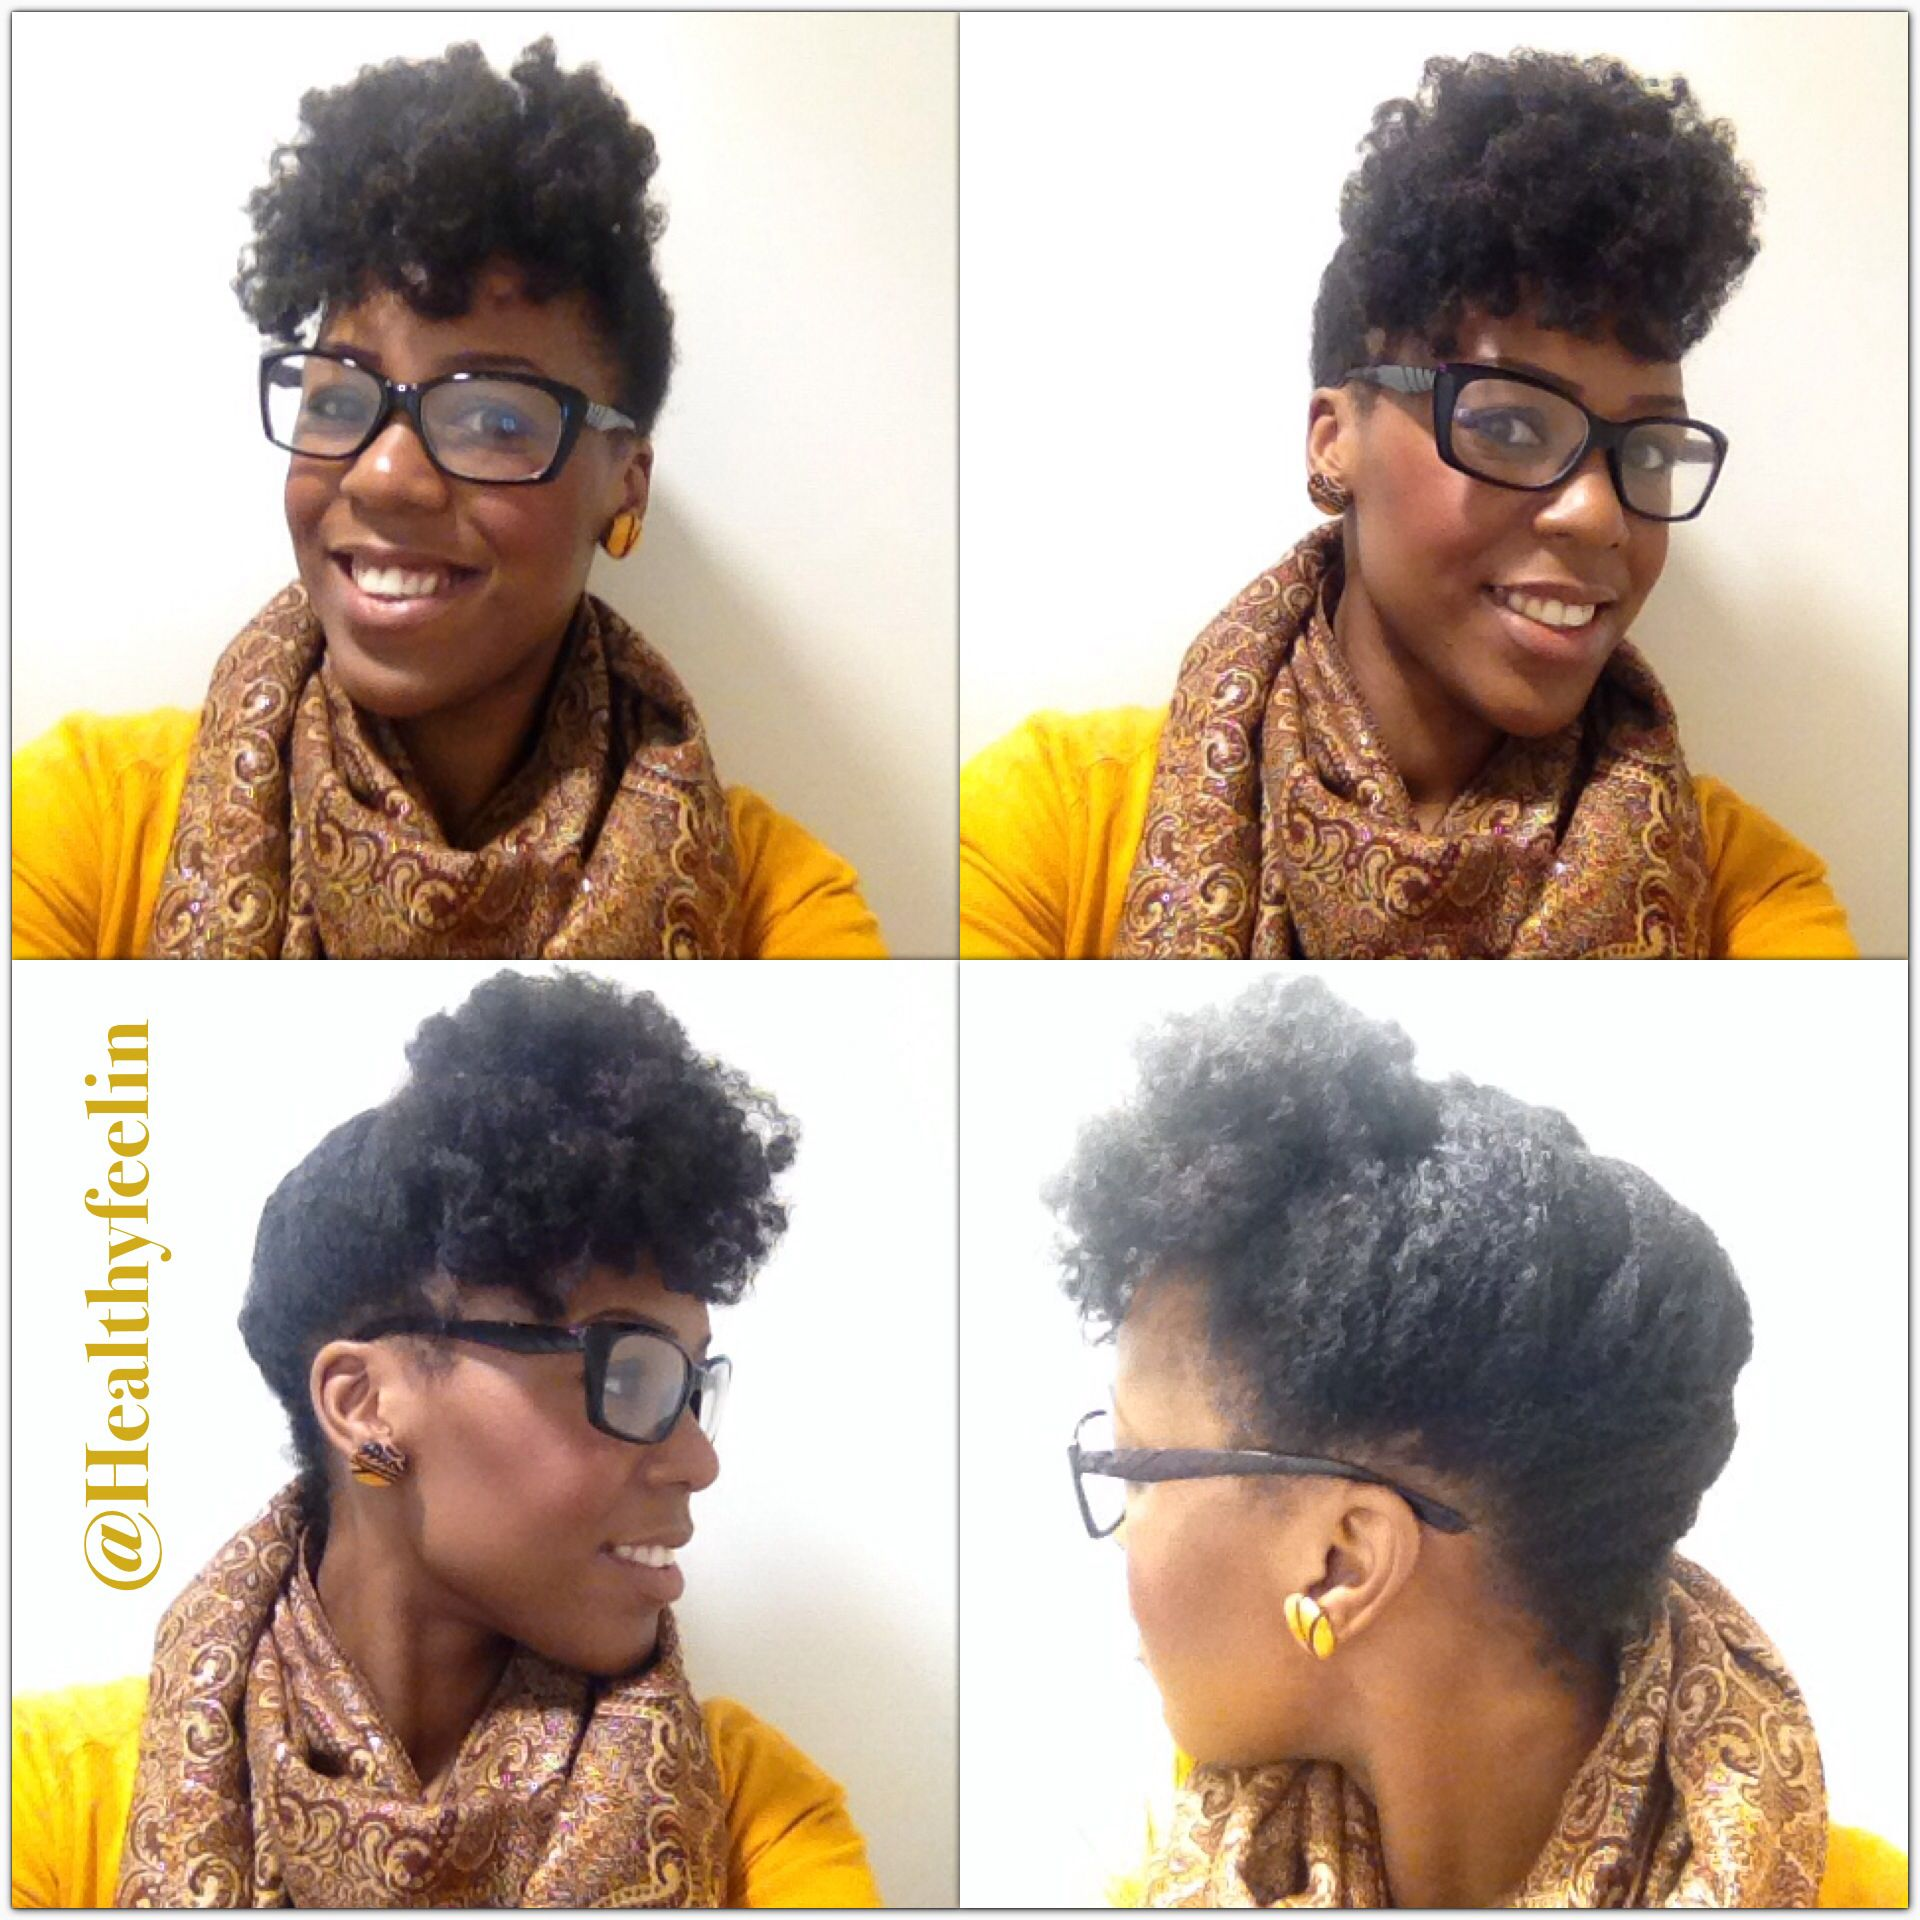 Coiffure Afro Bantu Knots Tuck And Pin From A Failed Bantu Knot Out On Natural 4c